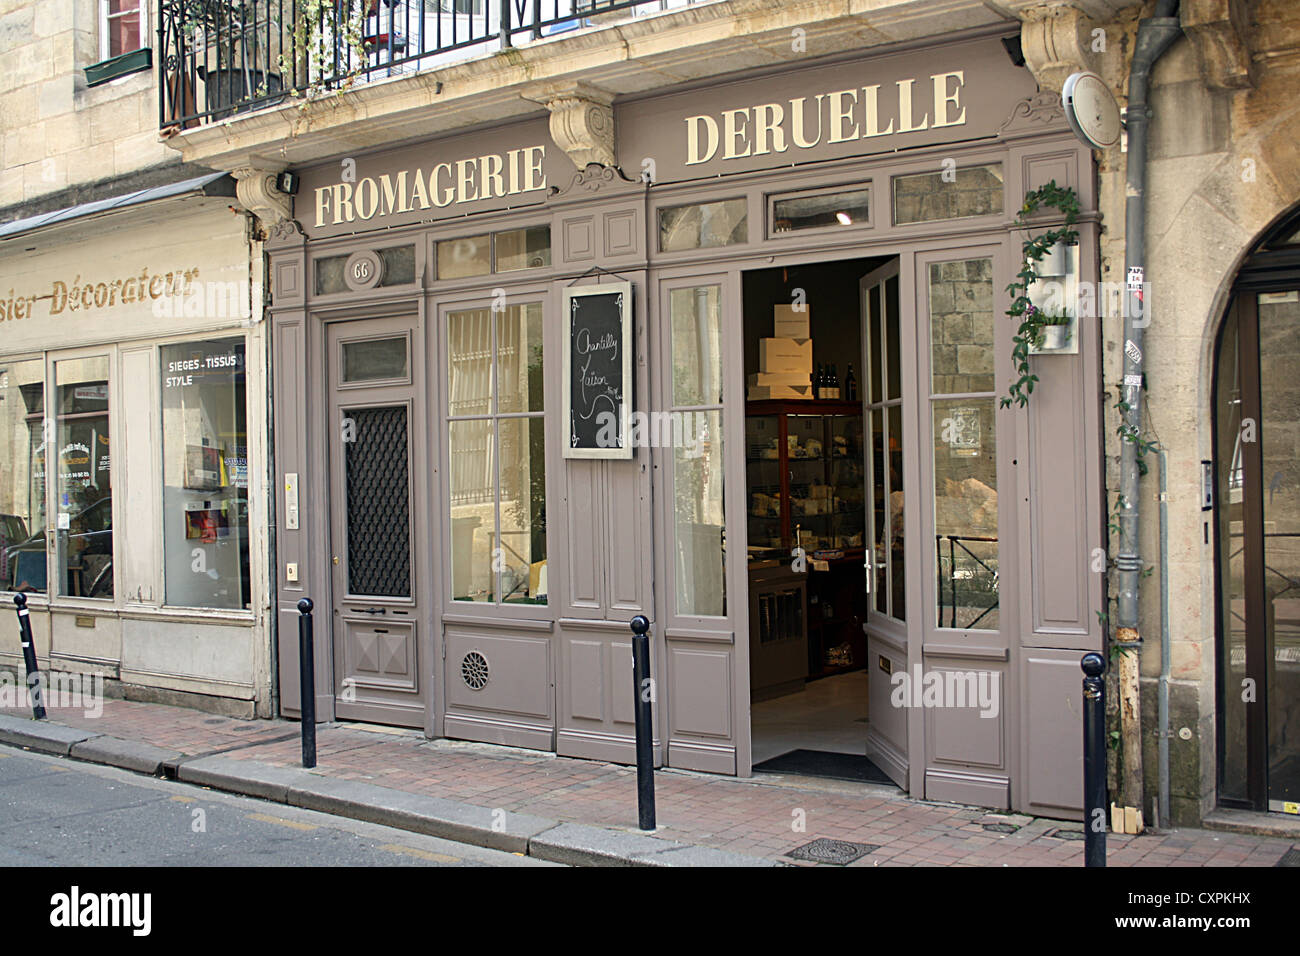 Fromagerie Deruelle, Bordeaux, France. - Stock Image